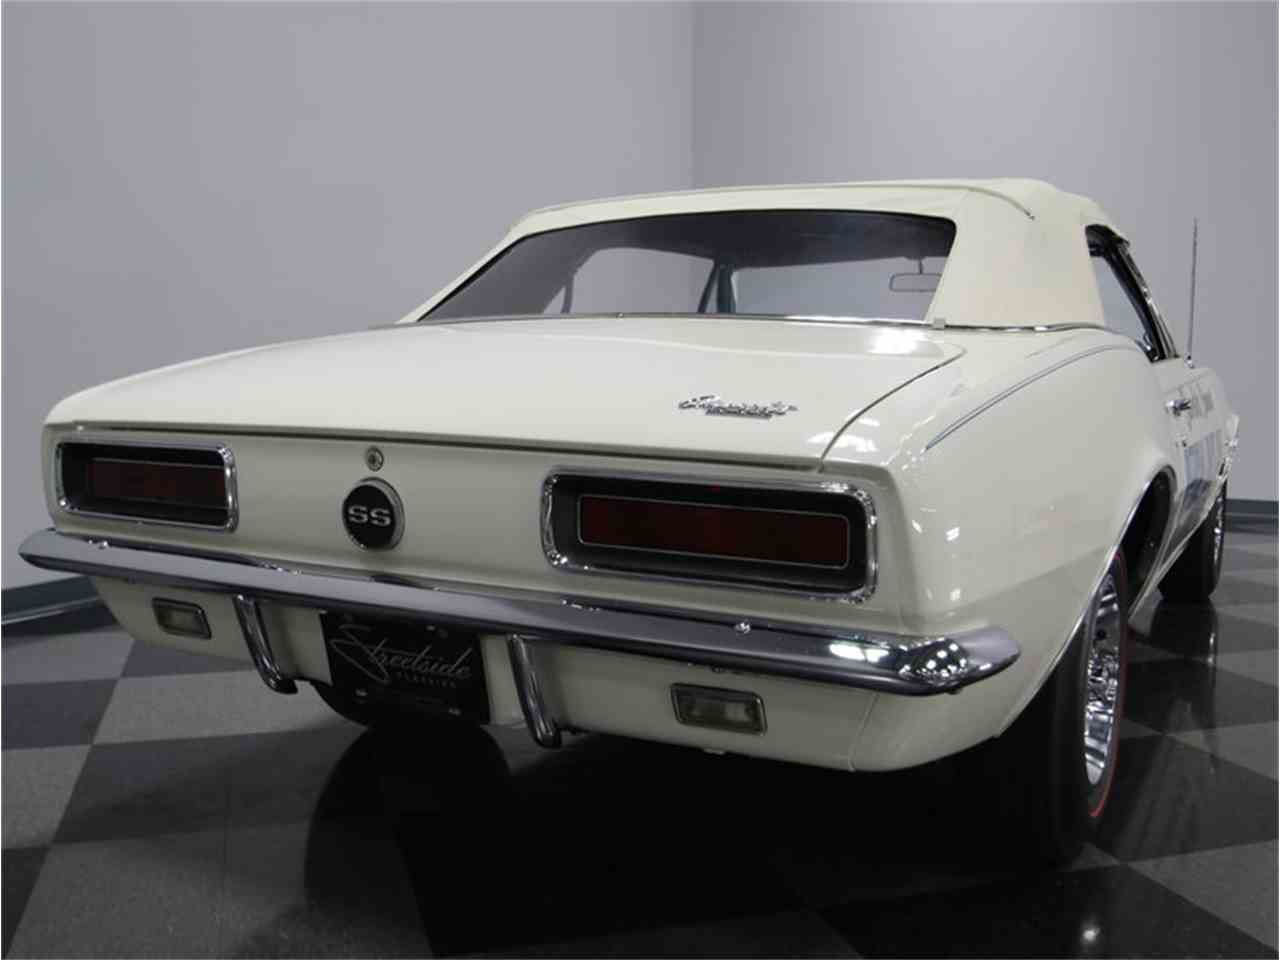 Large Picture of Classic '67 Chevrolet Camaro Indianapolis 500 Pace Car - $99,995.00 - JI5M